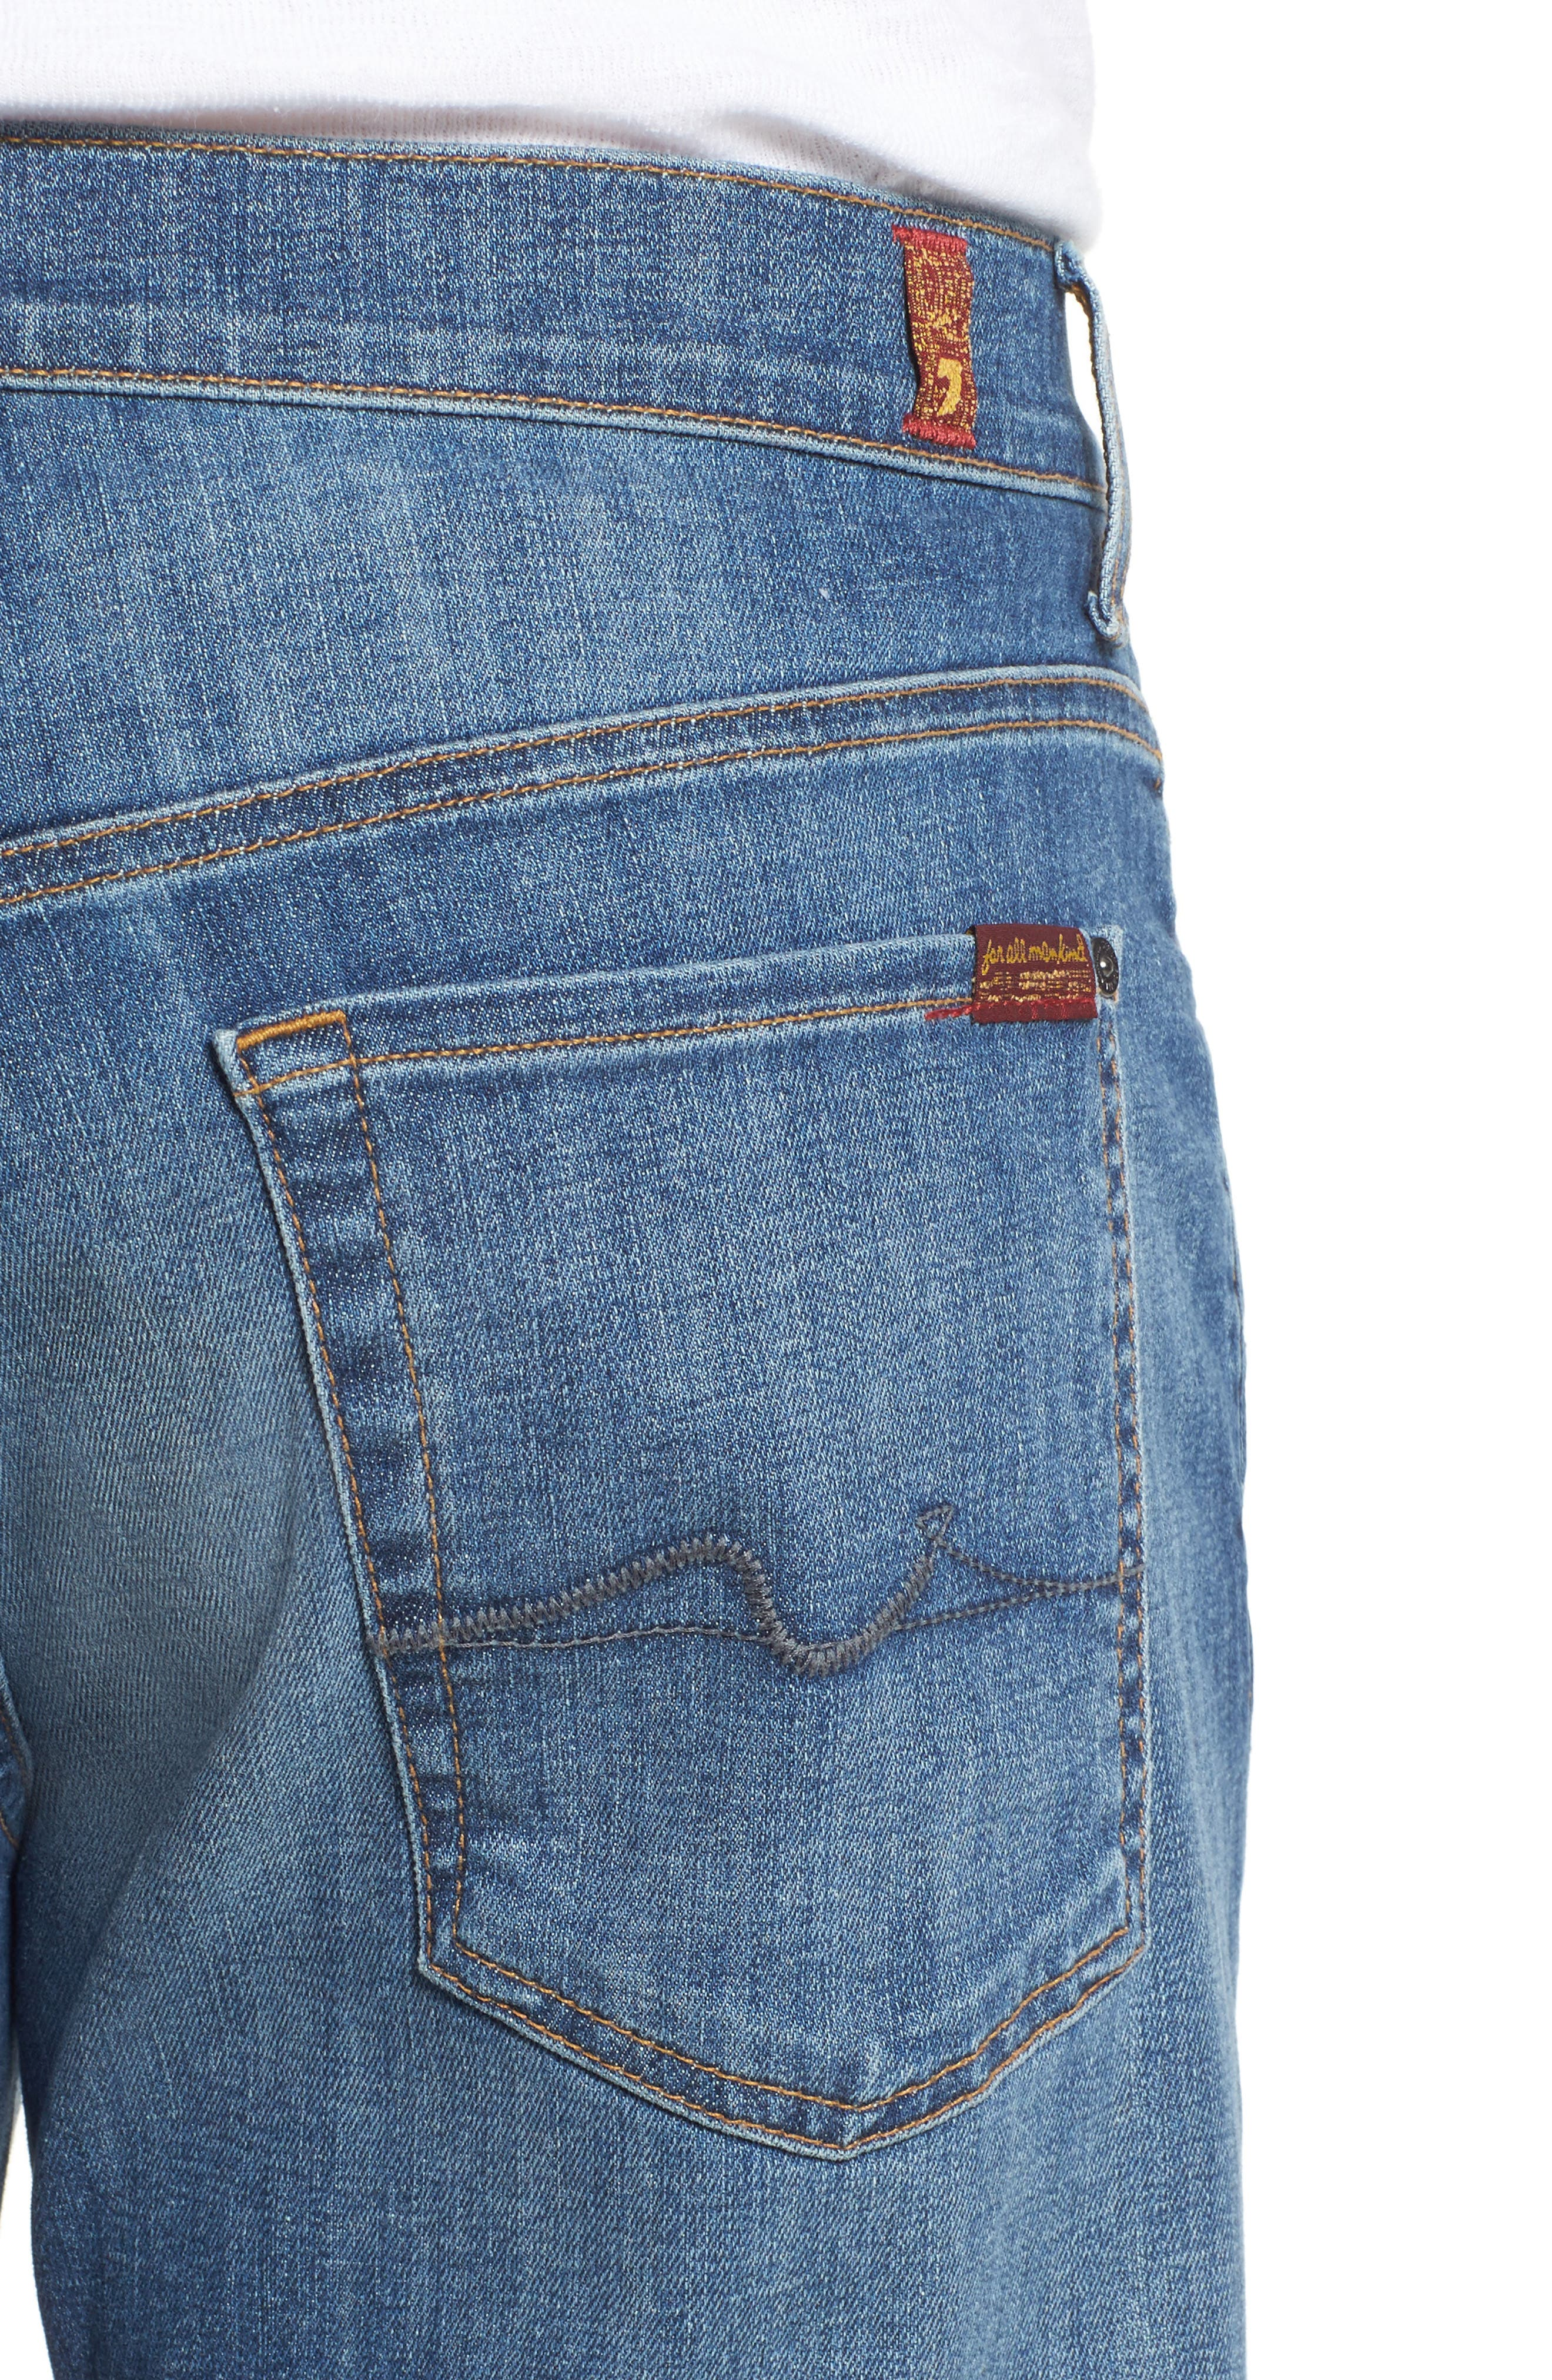 Austyn Relaxed Fit Jeans,                             Alternate thumbnail 4, color,                             EAST SUSSEX